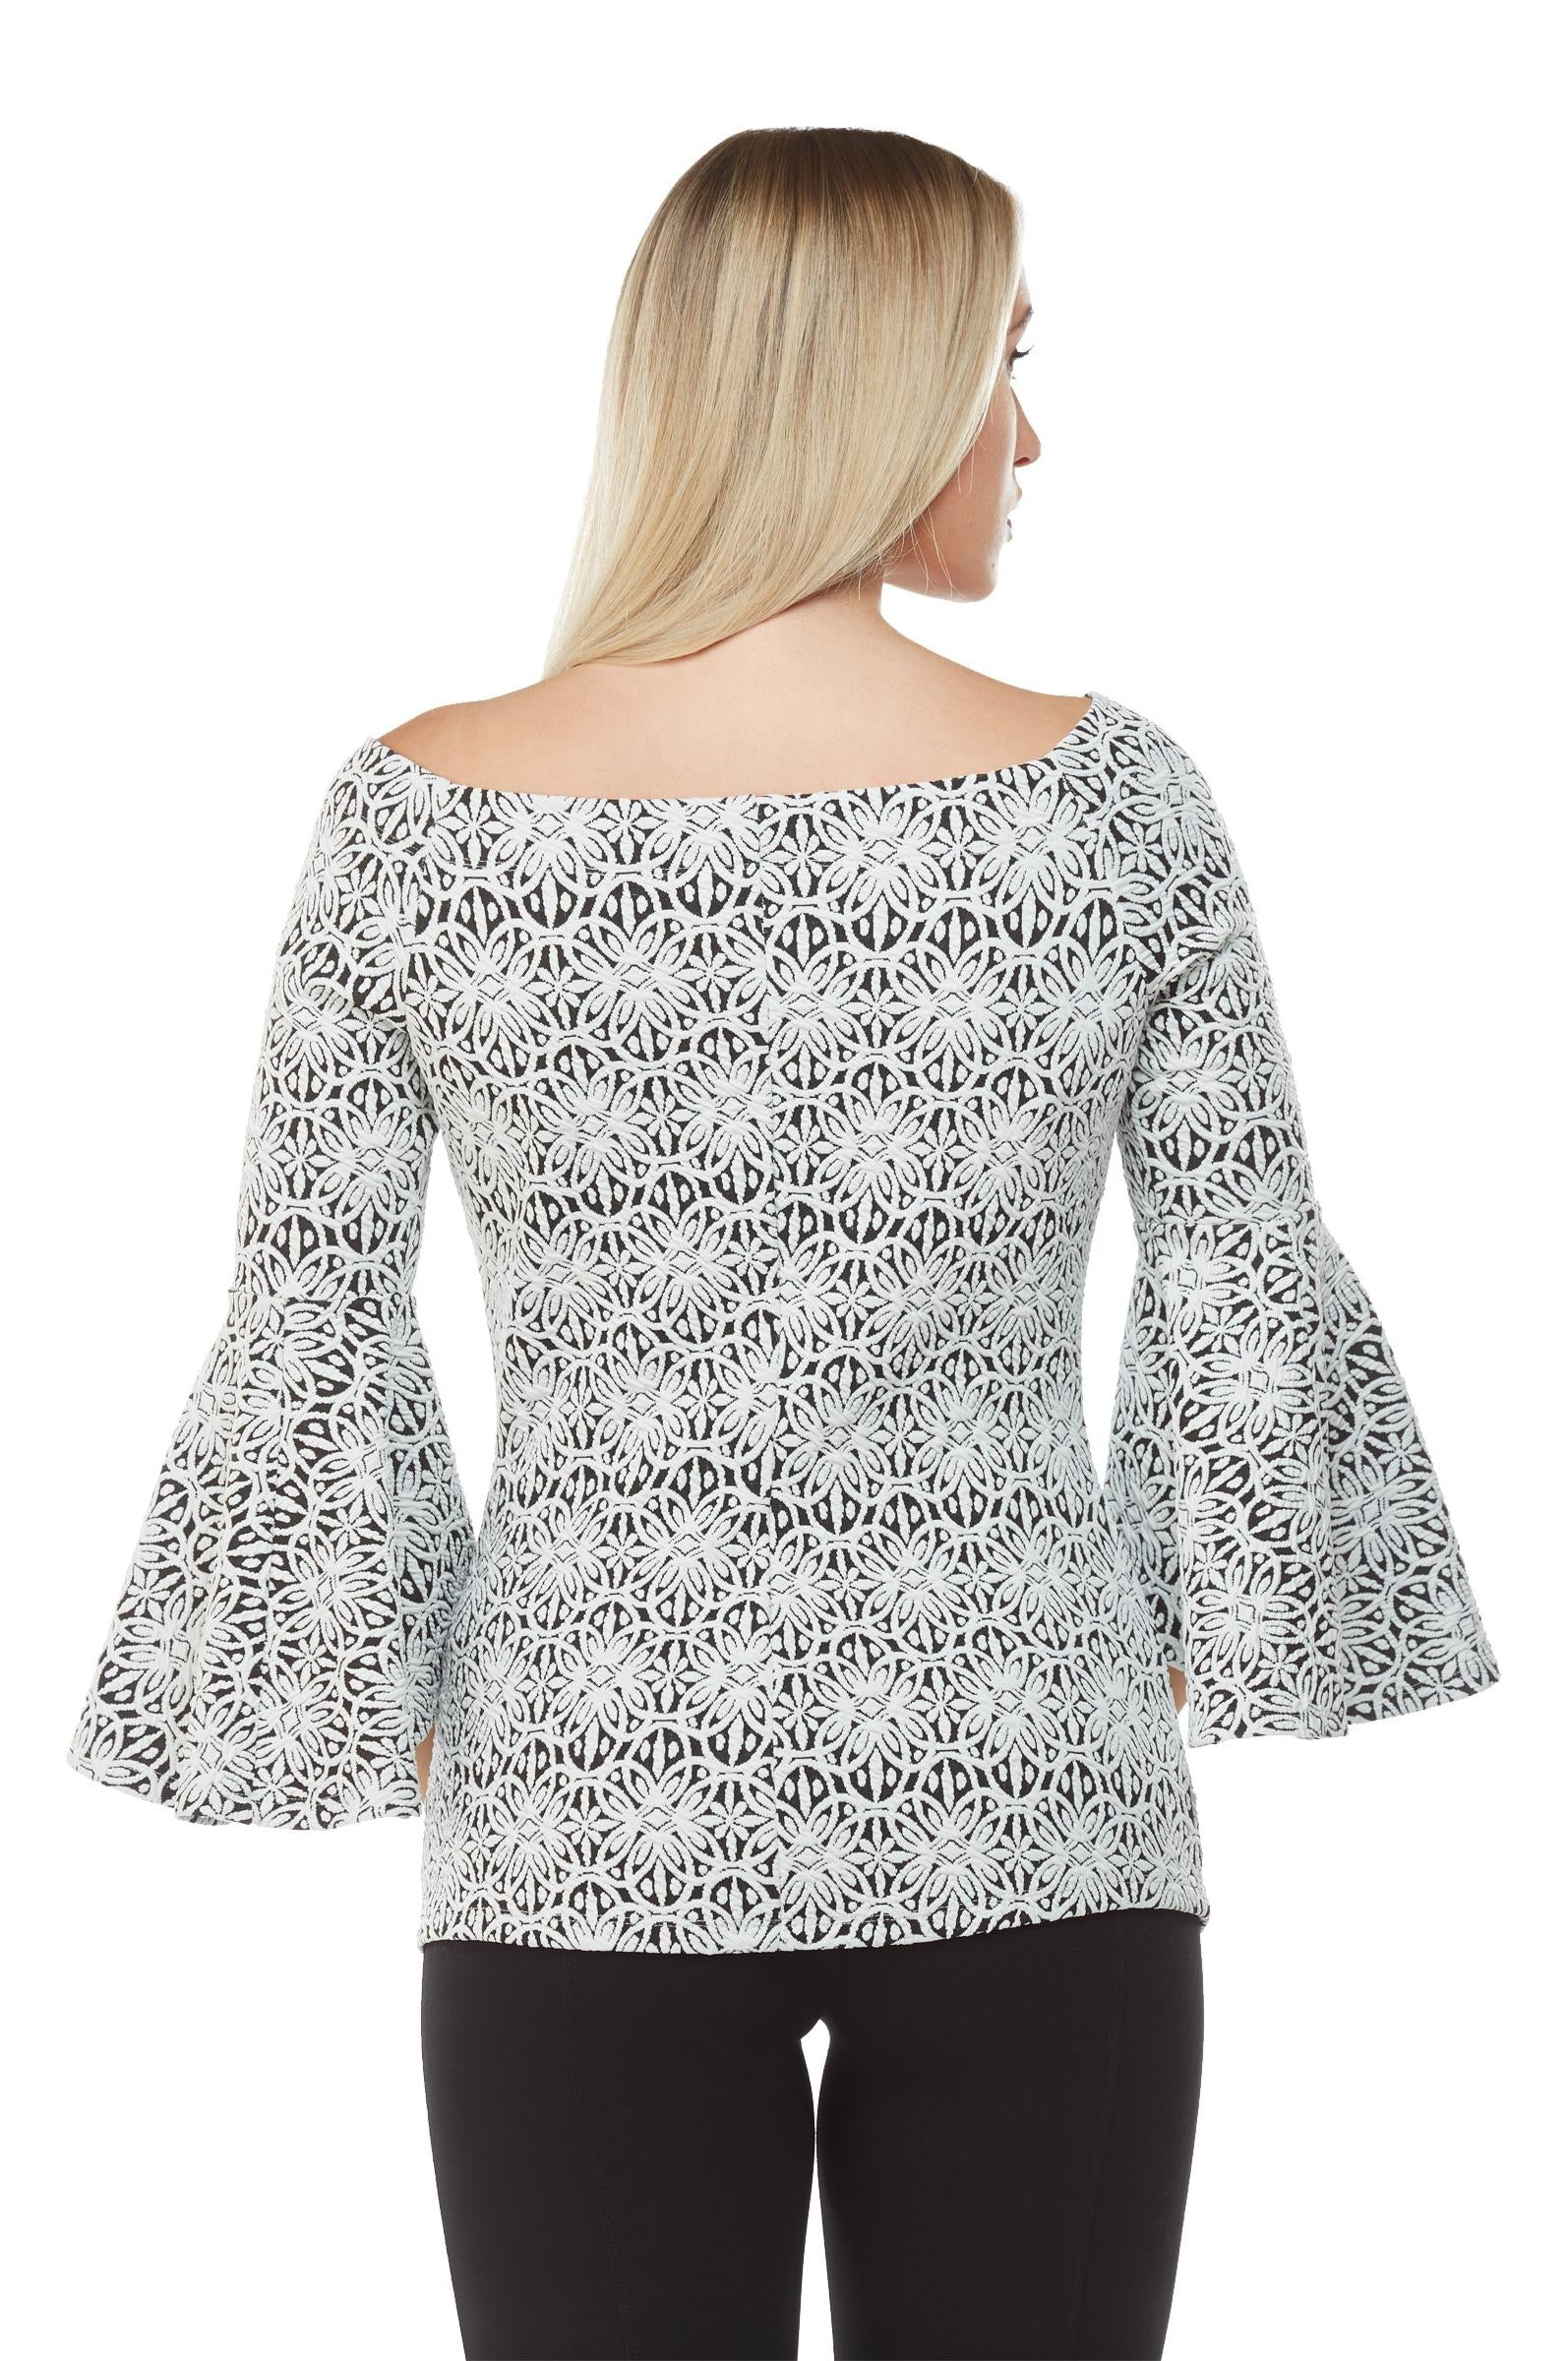 Back view woman wearing black/white off the shoulder jacquard knit  bell sleeve top